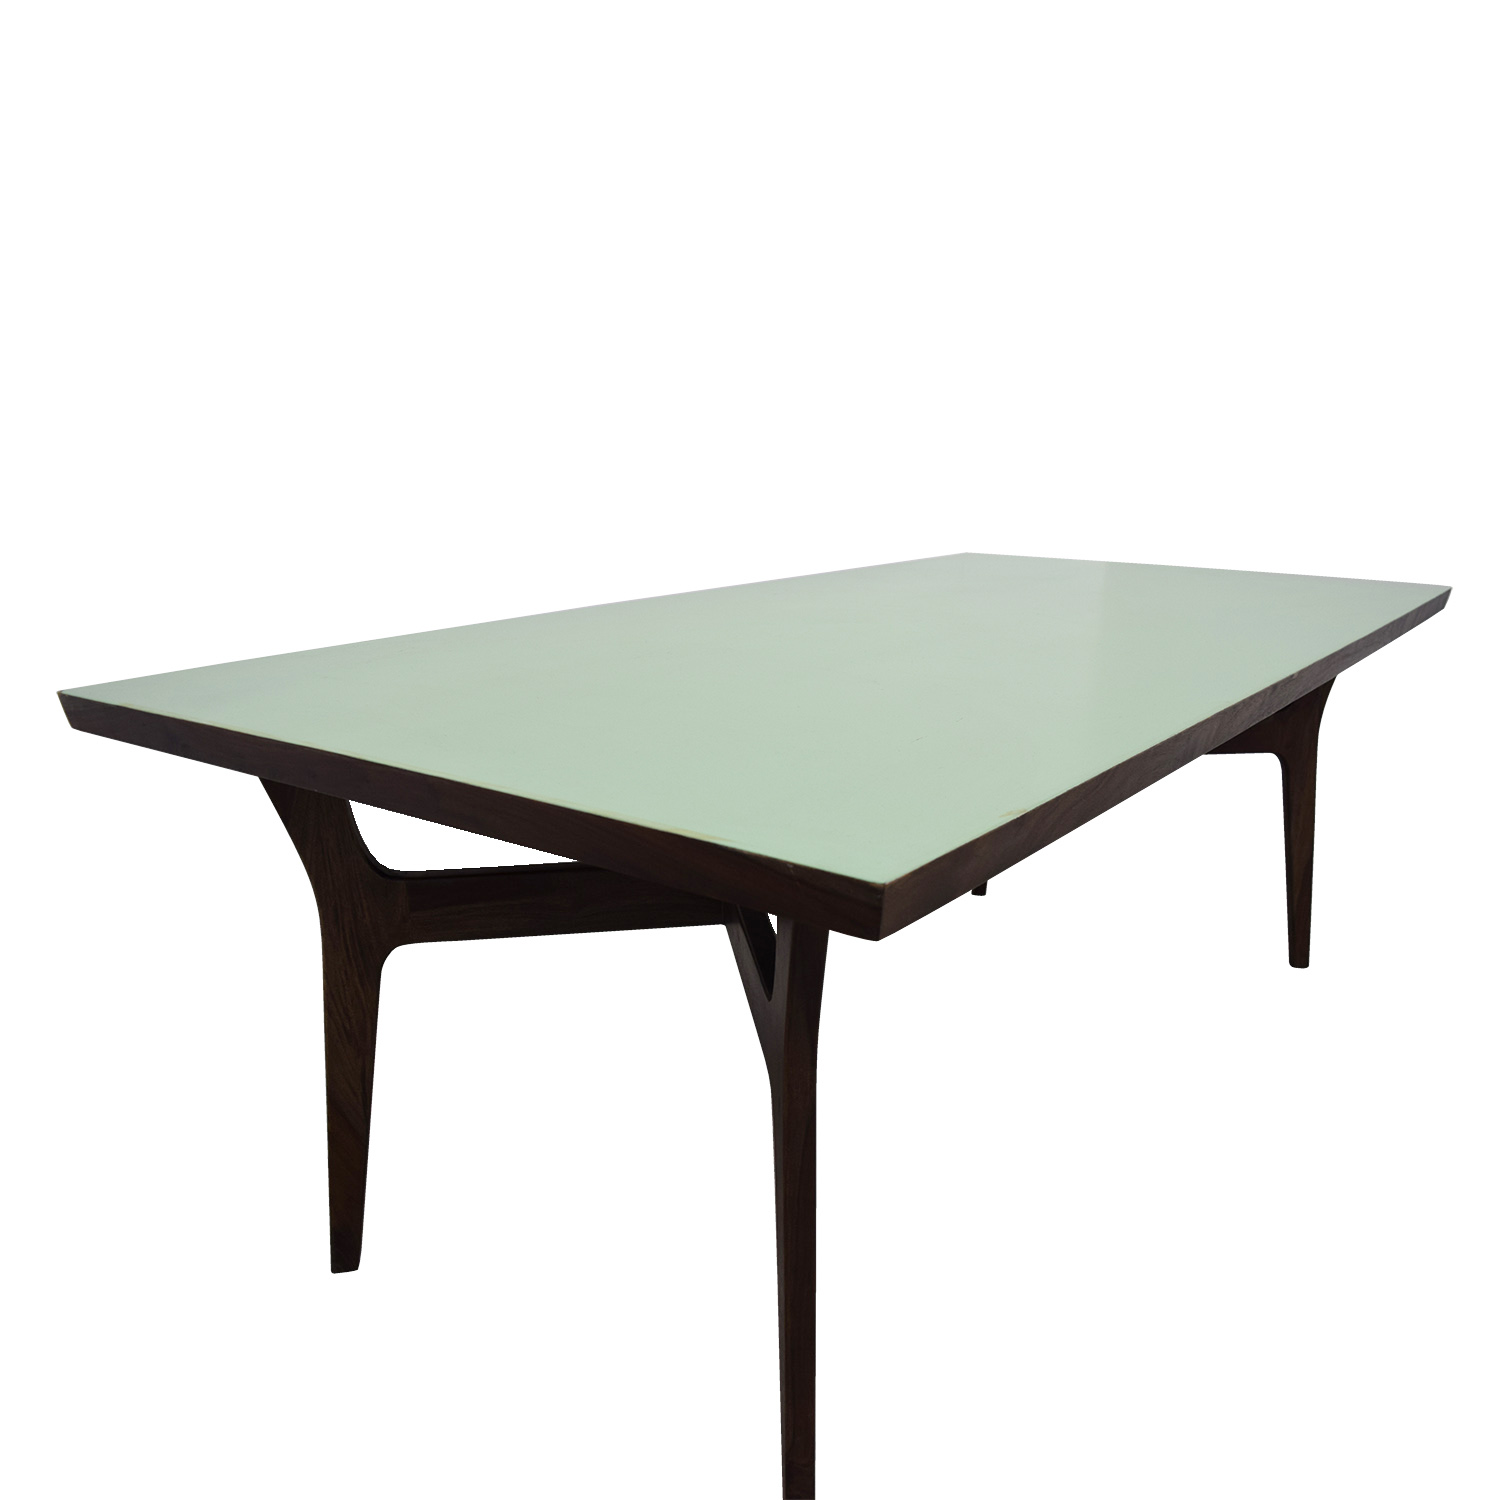 Wood and Teal Dining Table